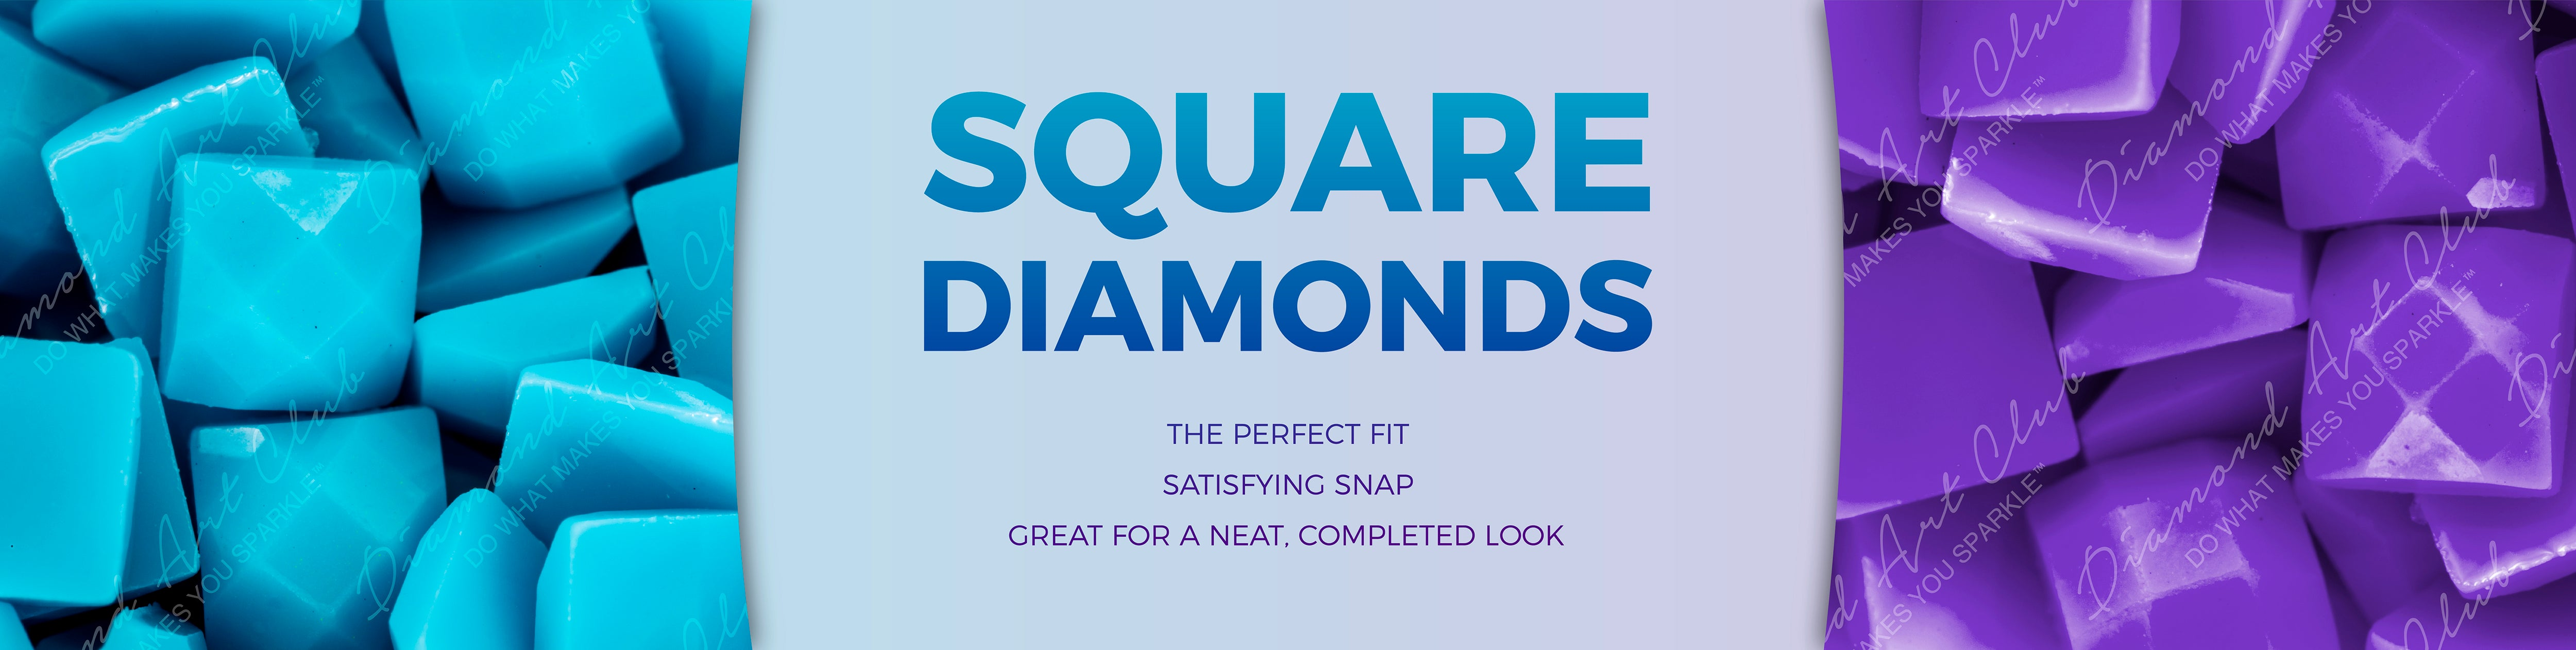 Square Diamonds